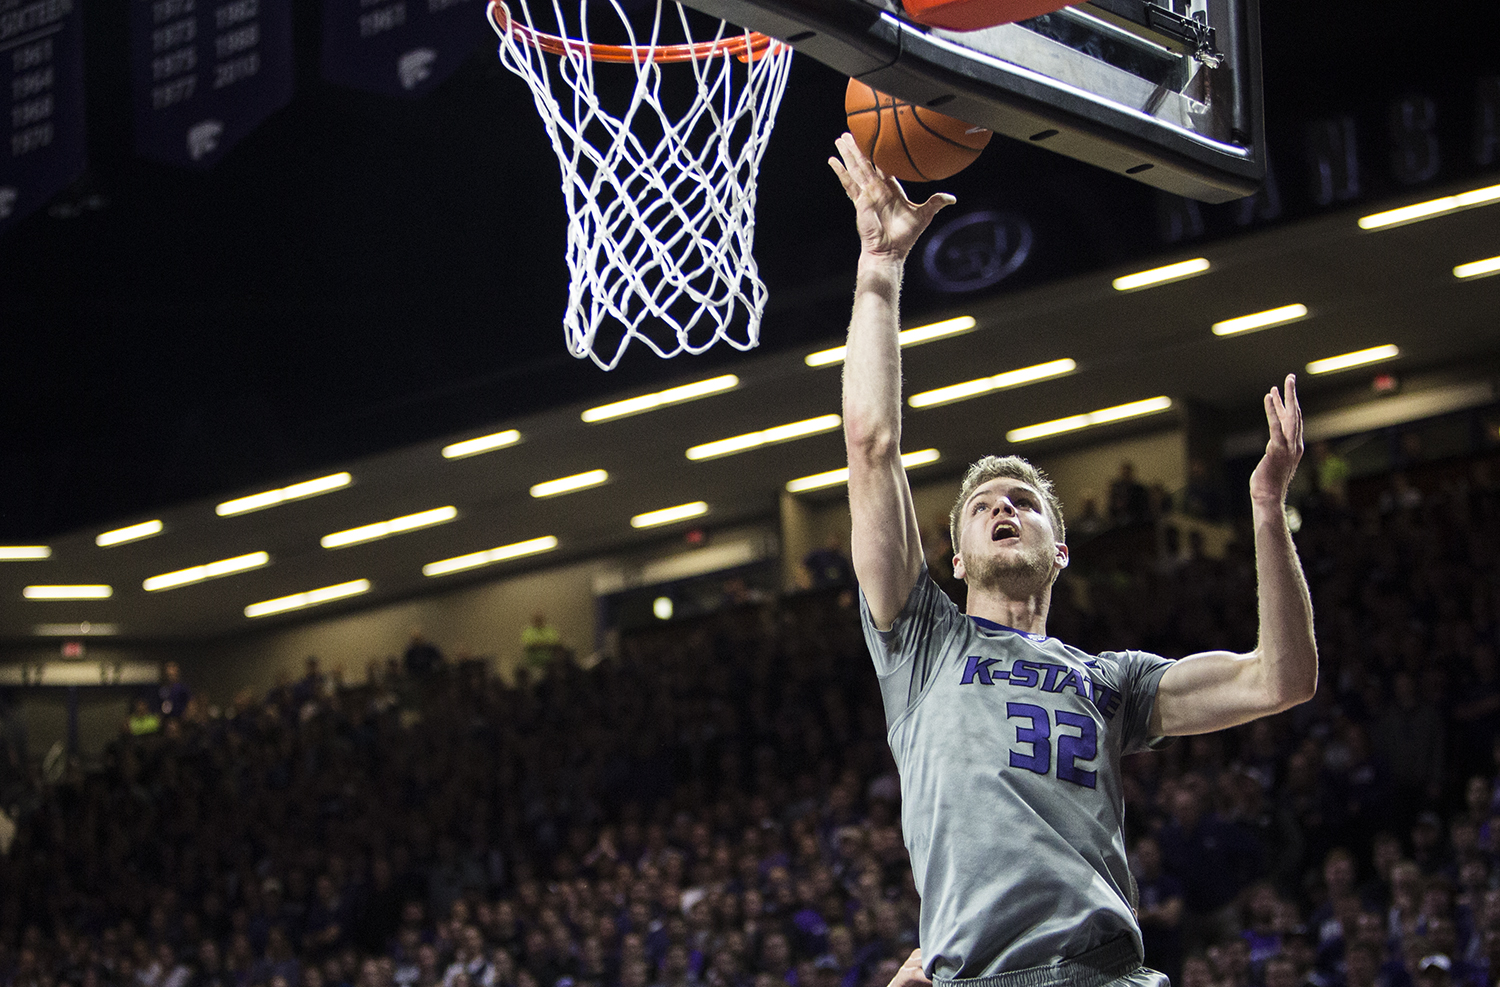 K-State men's basketball falls to Kansas in Sunflower ...